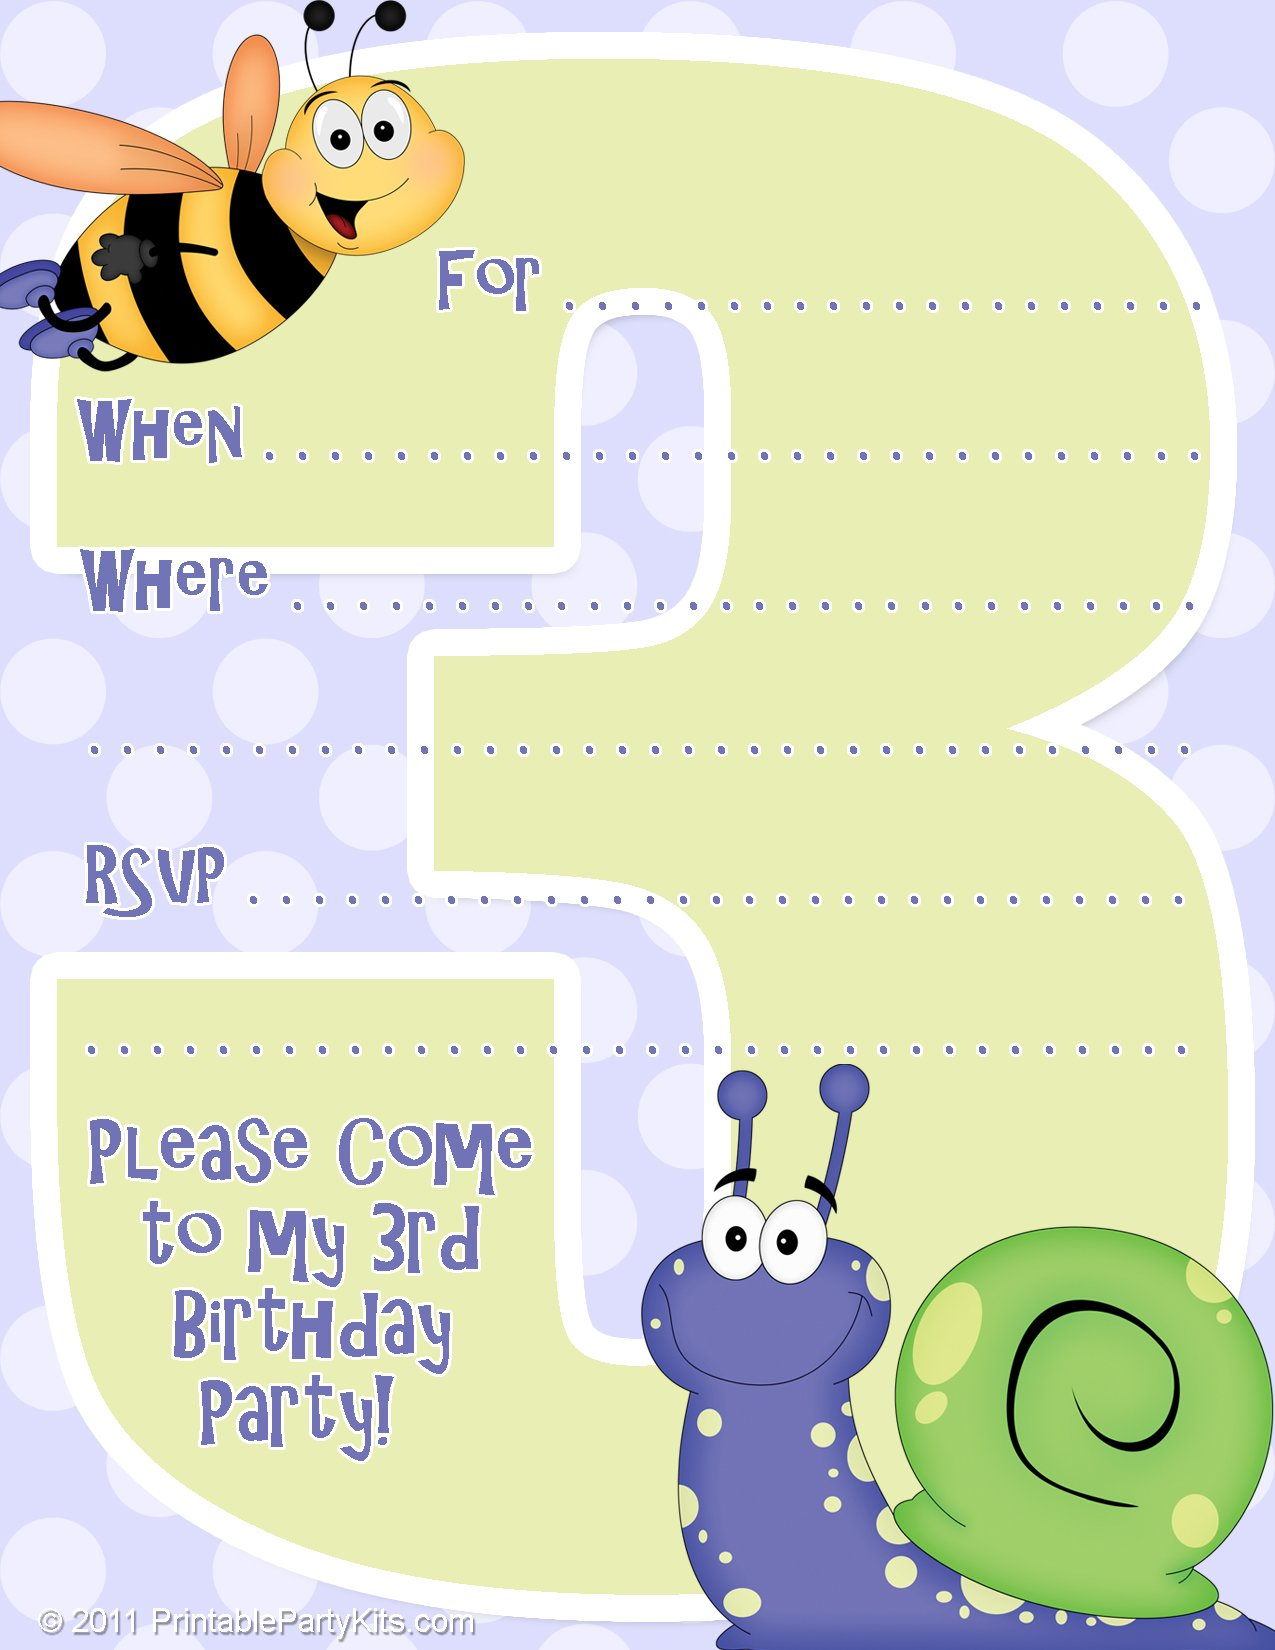 Free printable birthday party invitations drevio invitations design free printable bee birthday party invitations stopboris Images